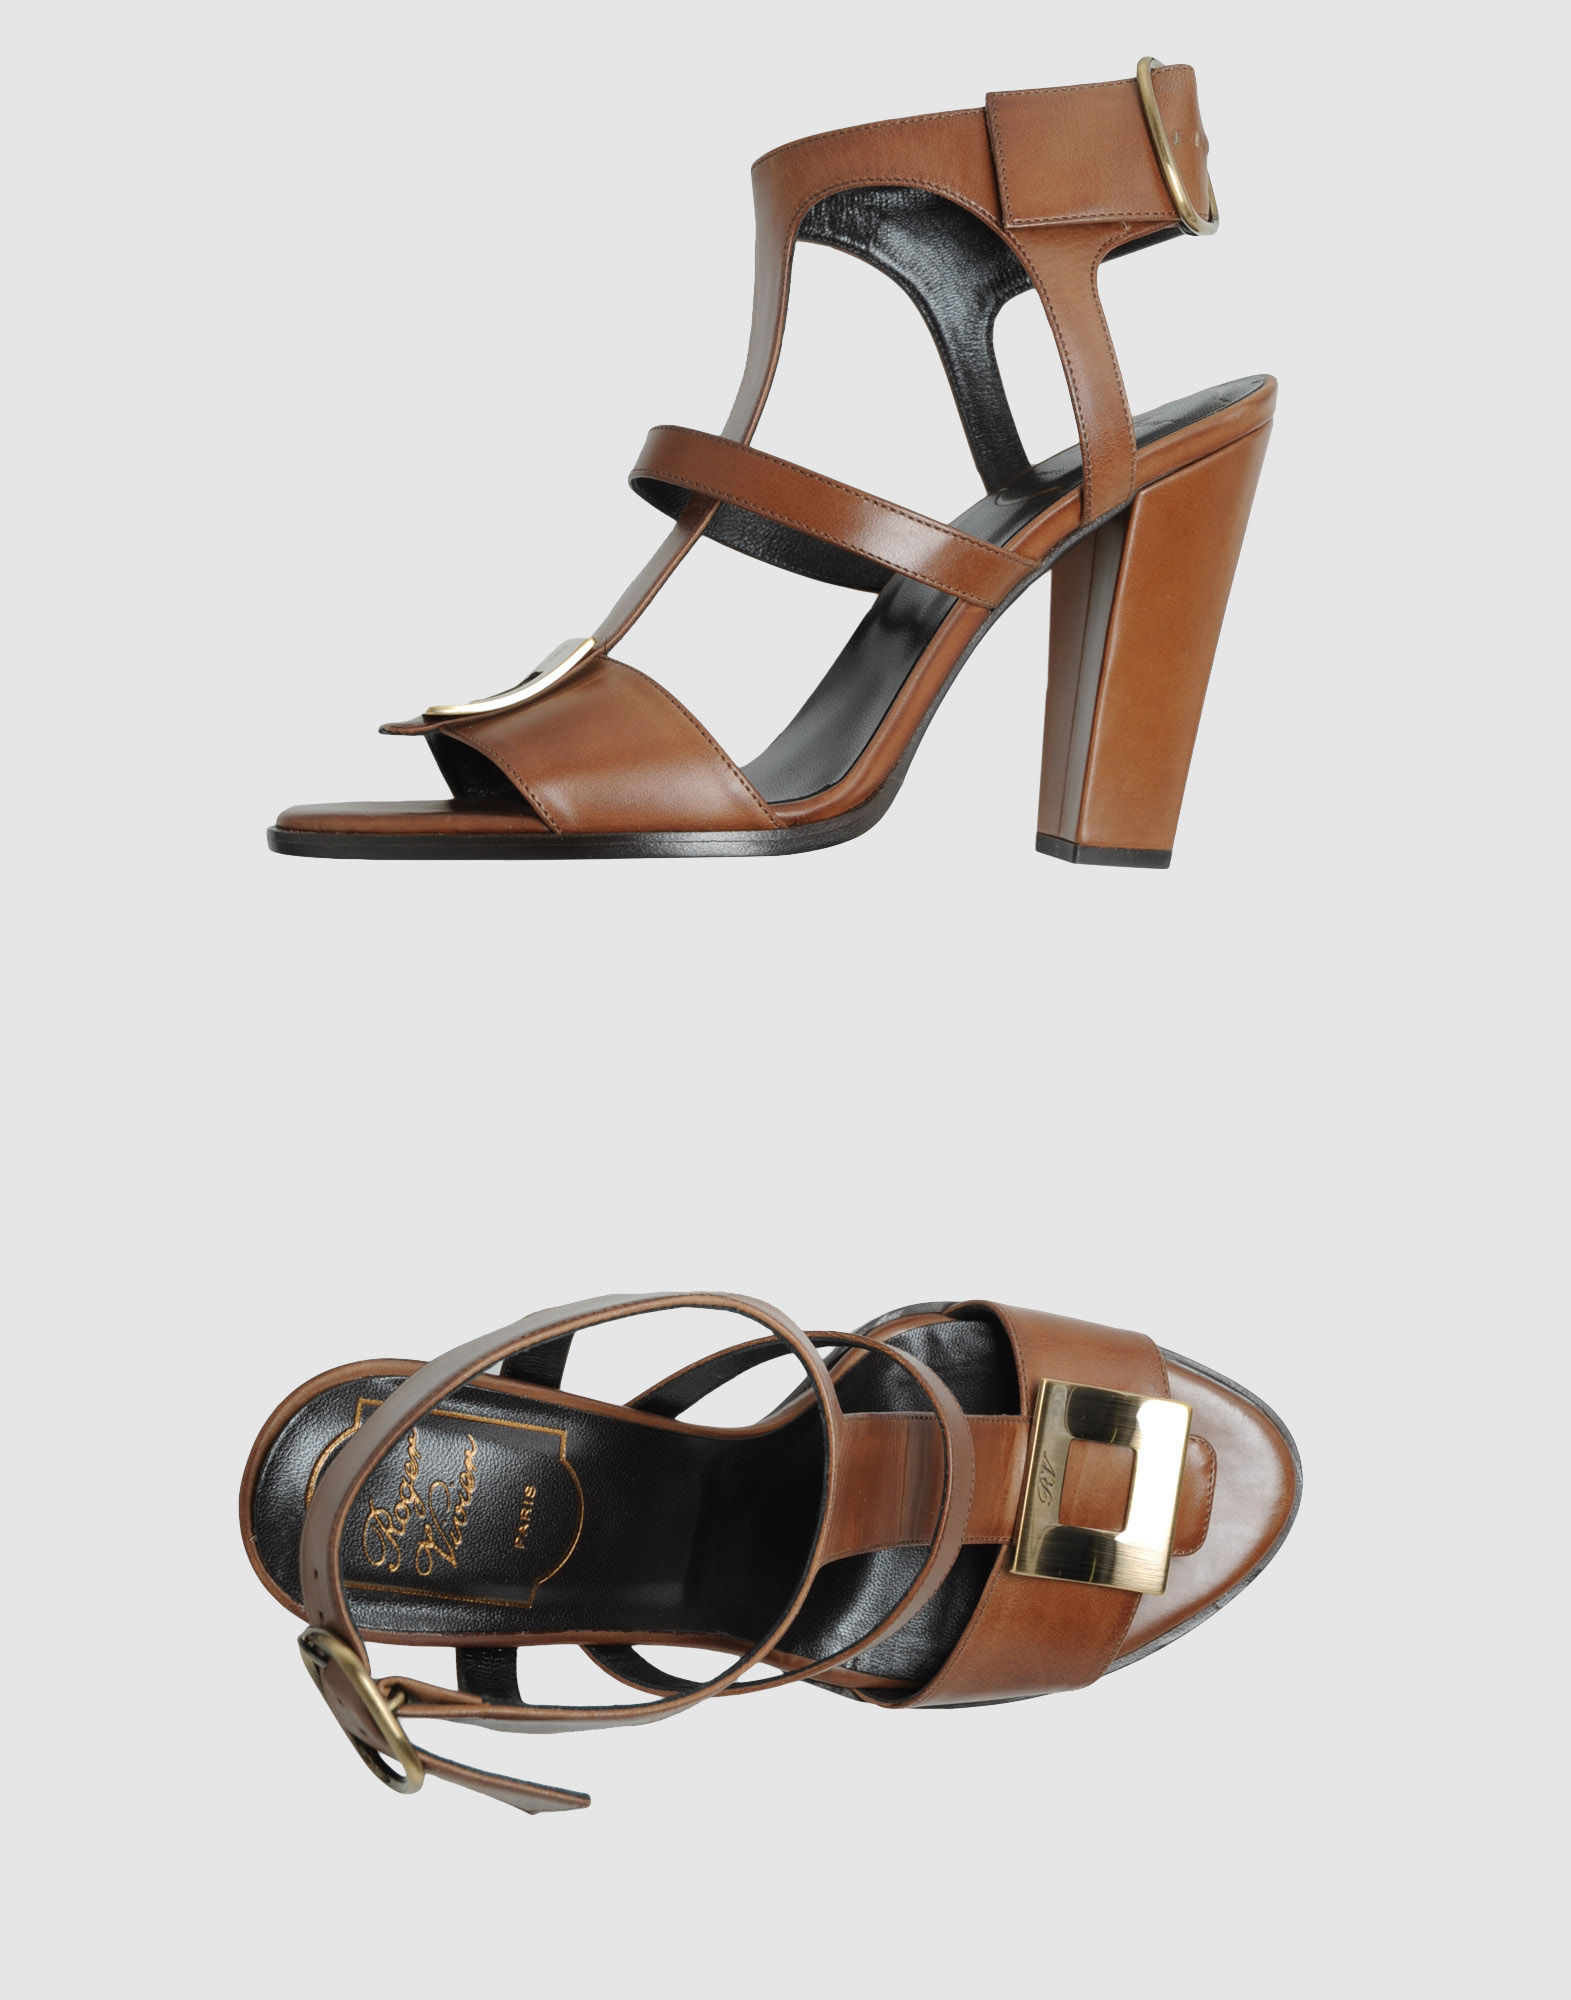 ROGER VIVIER High-heeled sandals. buckling ankle strap closure, round toeline, visible logo, metallic inserts, leather sole, covered heel. Soft leather